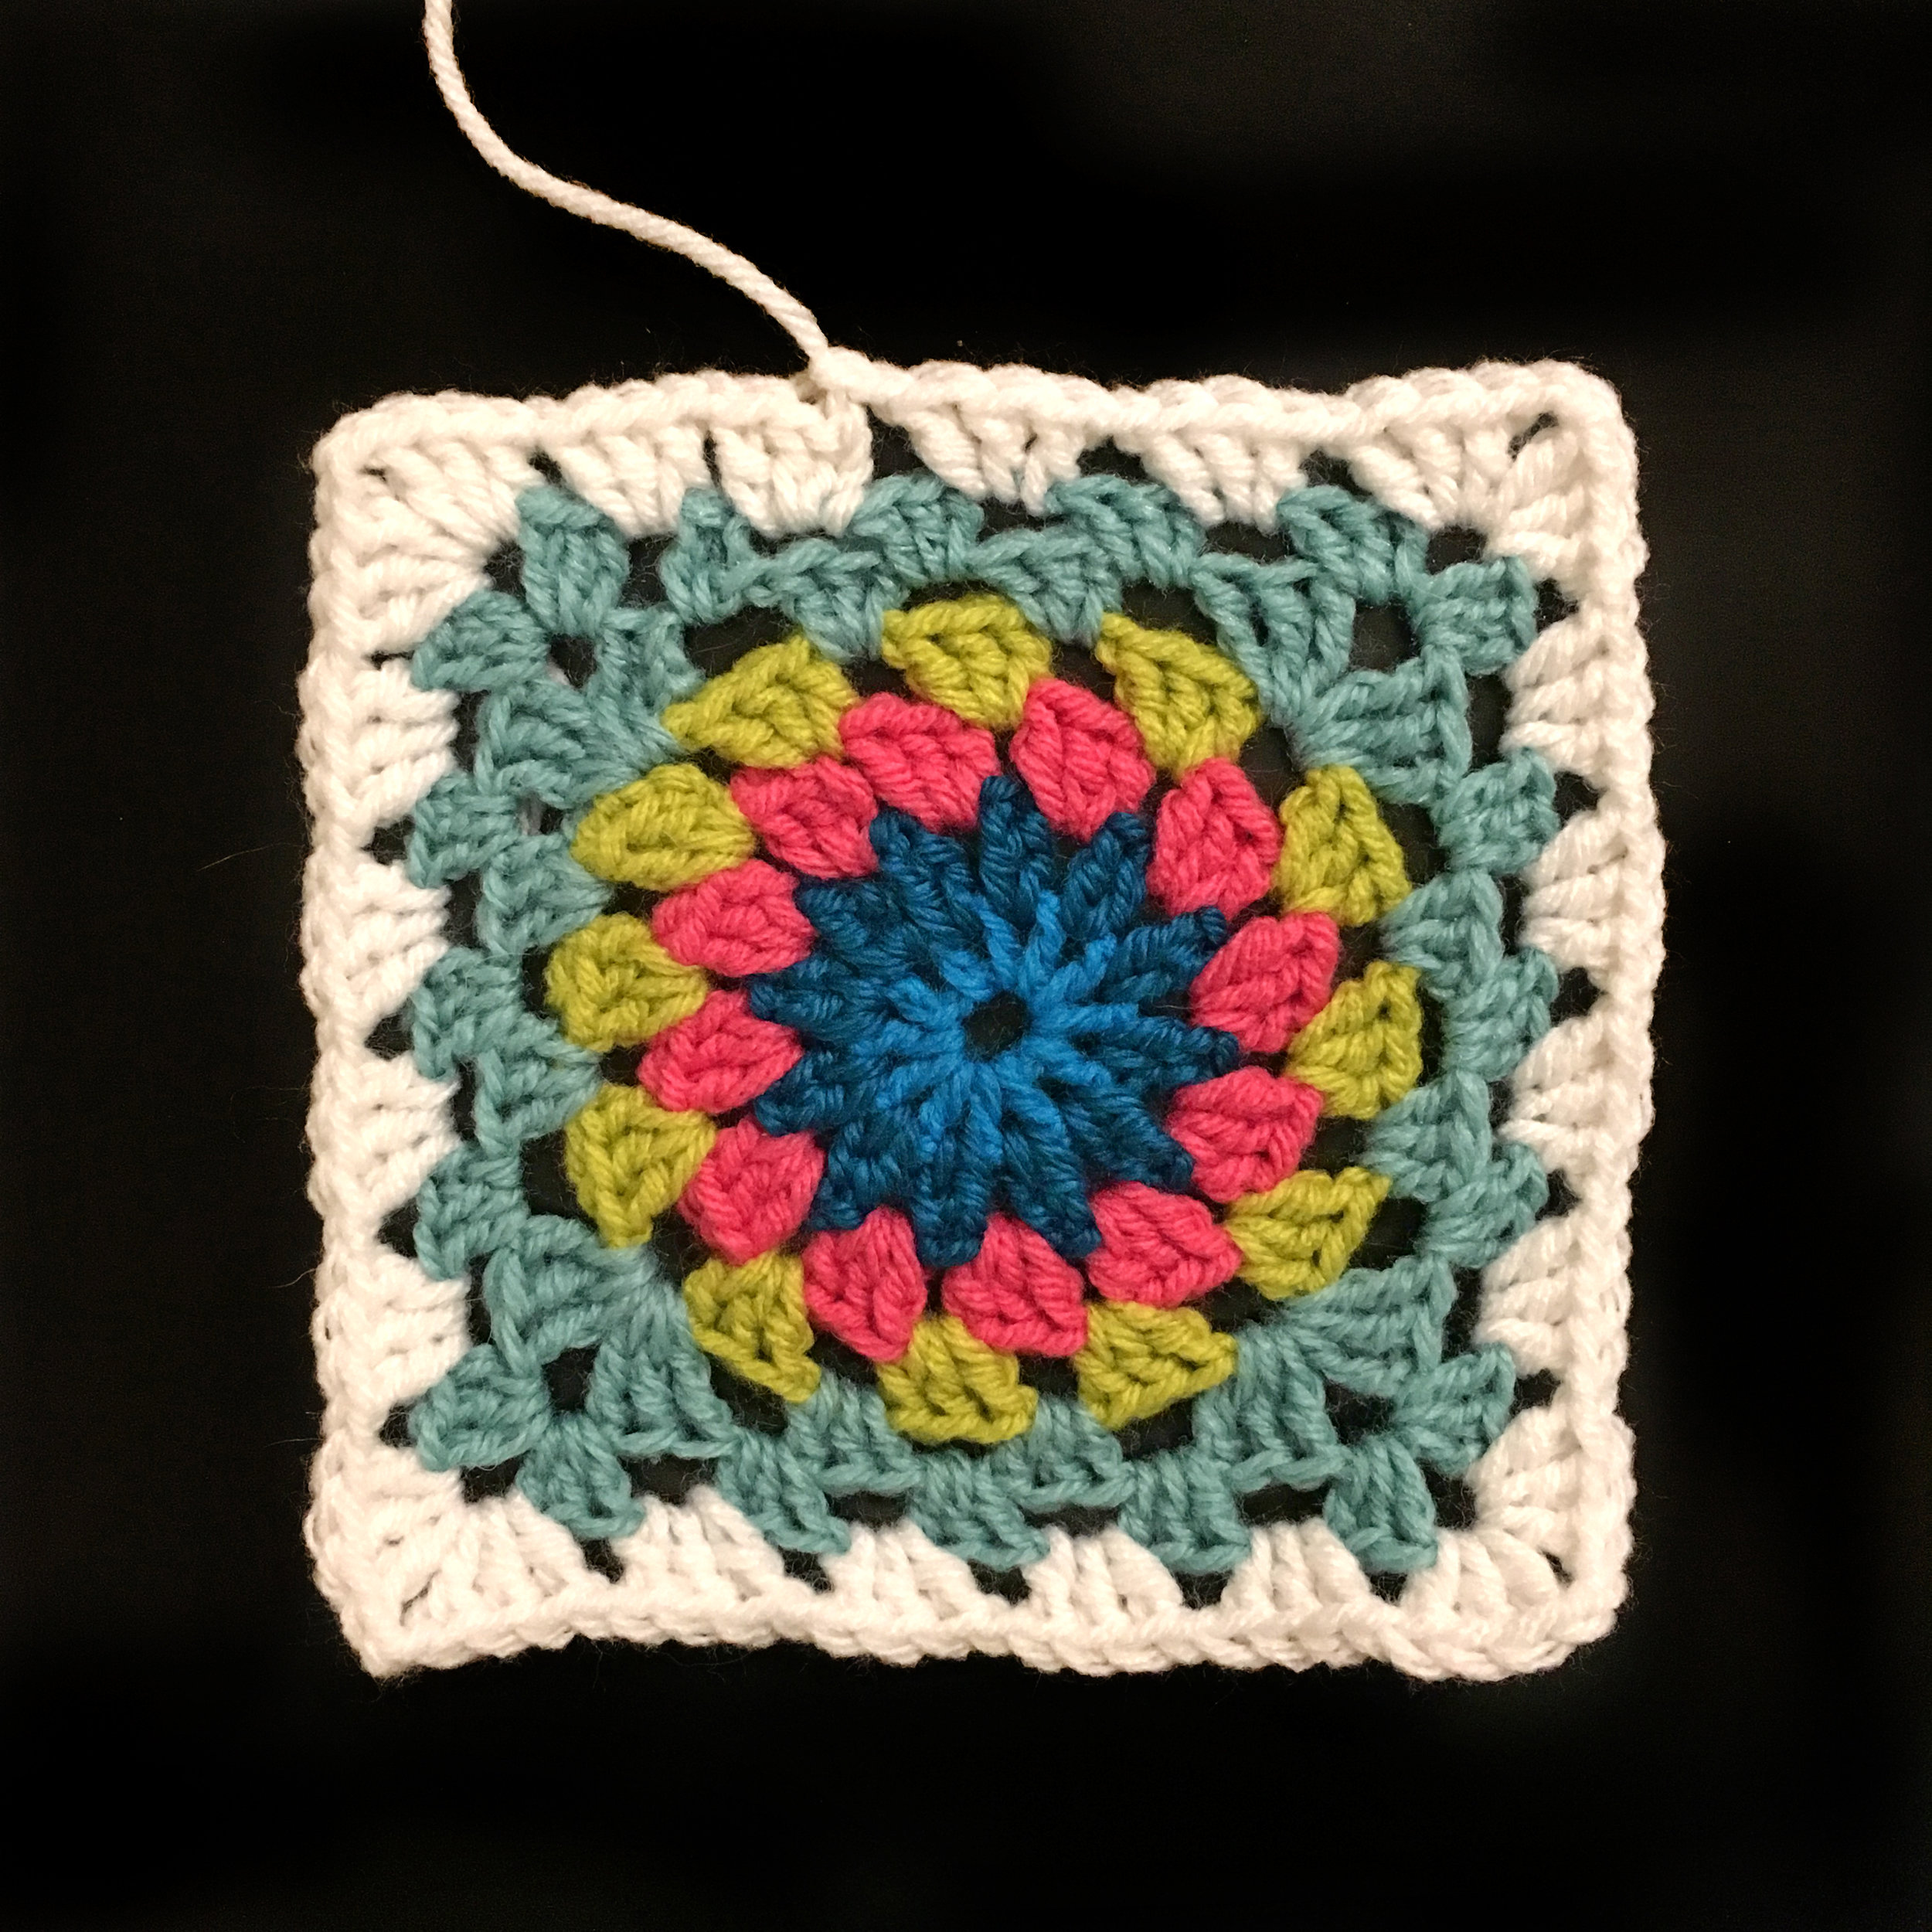 I've started the  Happy Flower  crochet project.